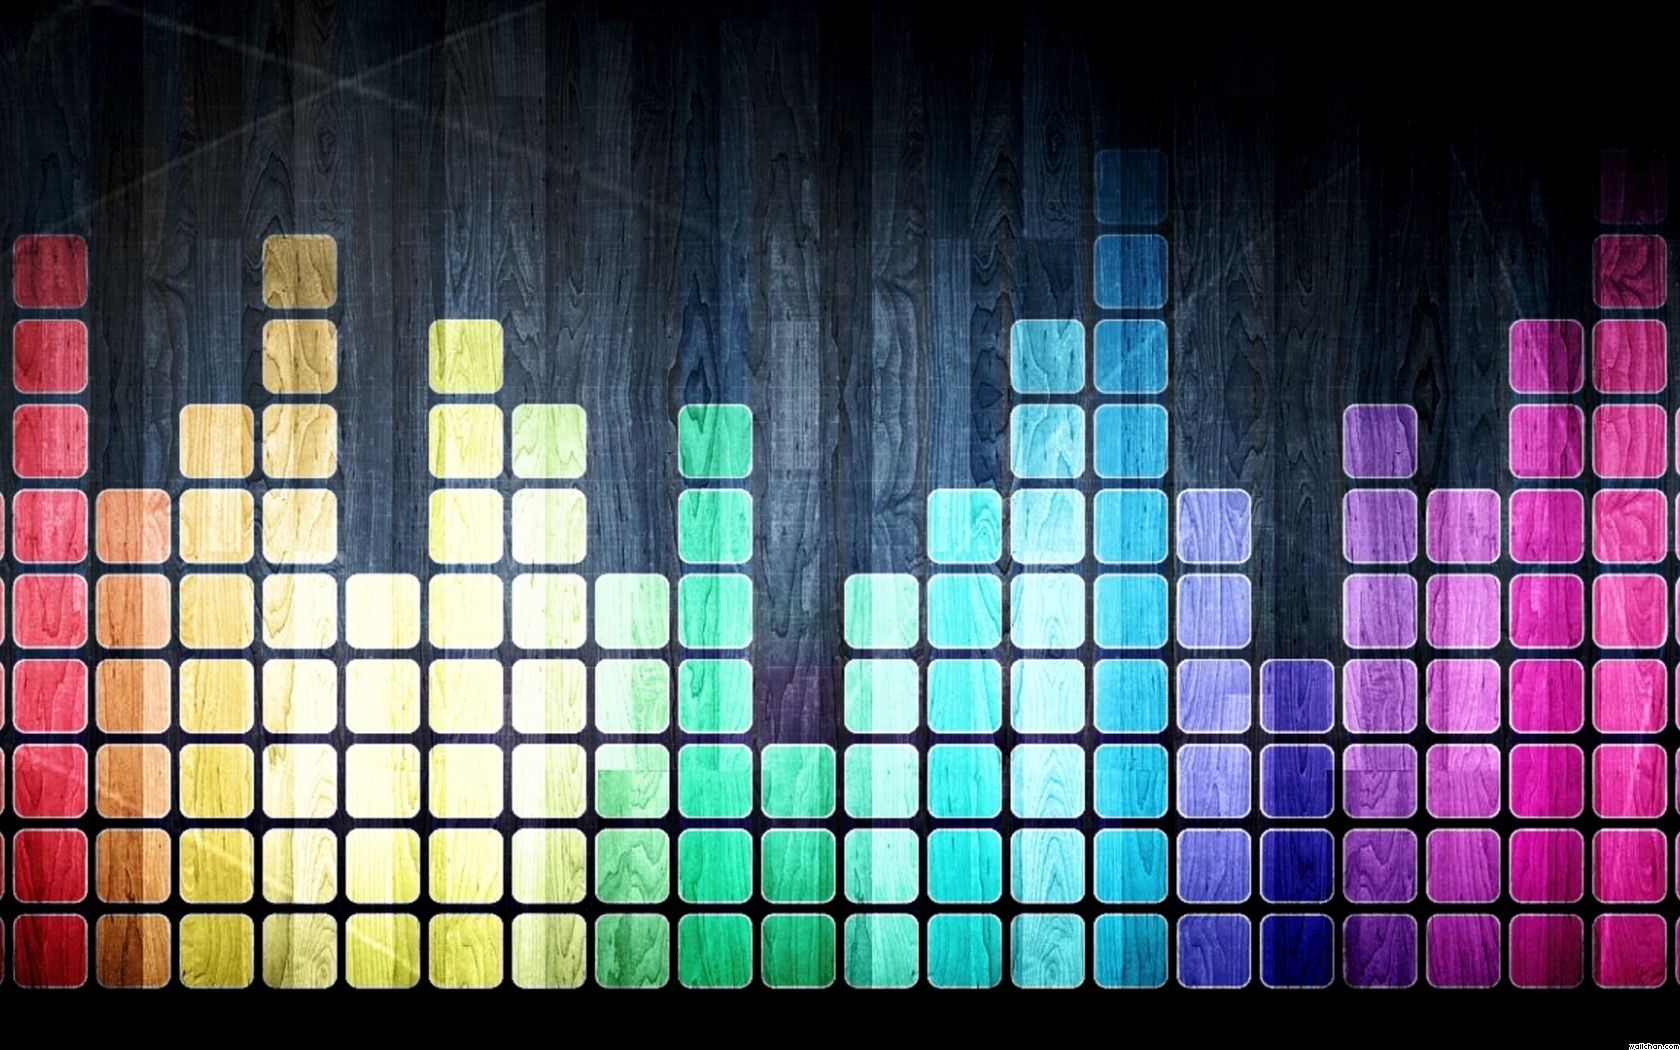 Popular Wallpaper Music Rainbow - a40238716c83f4998a4533a3b0a9a19b  Perfect Image Reference_245570.jpg